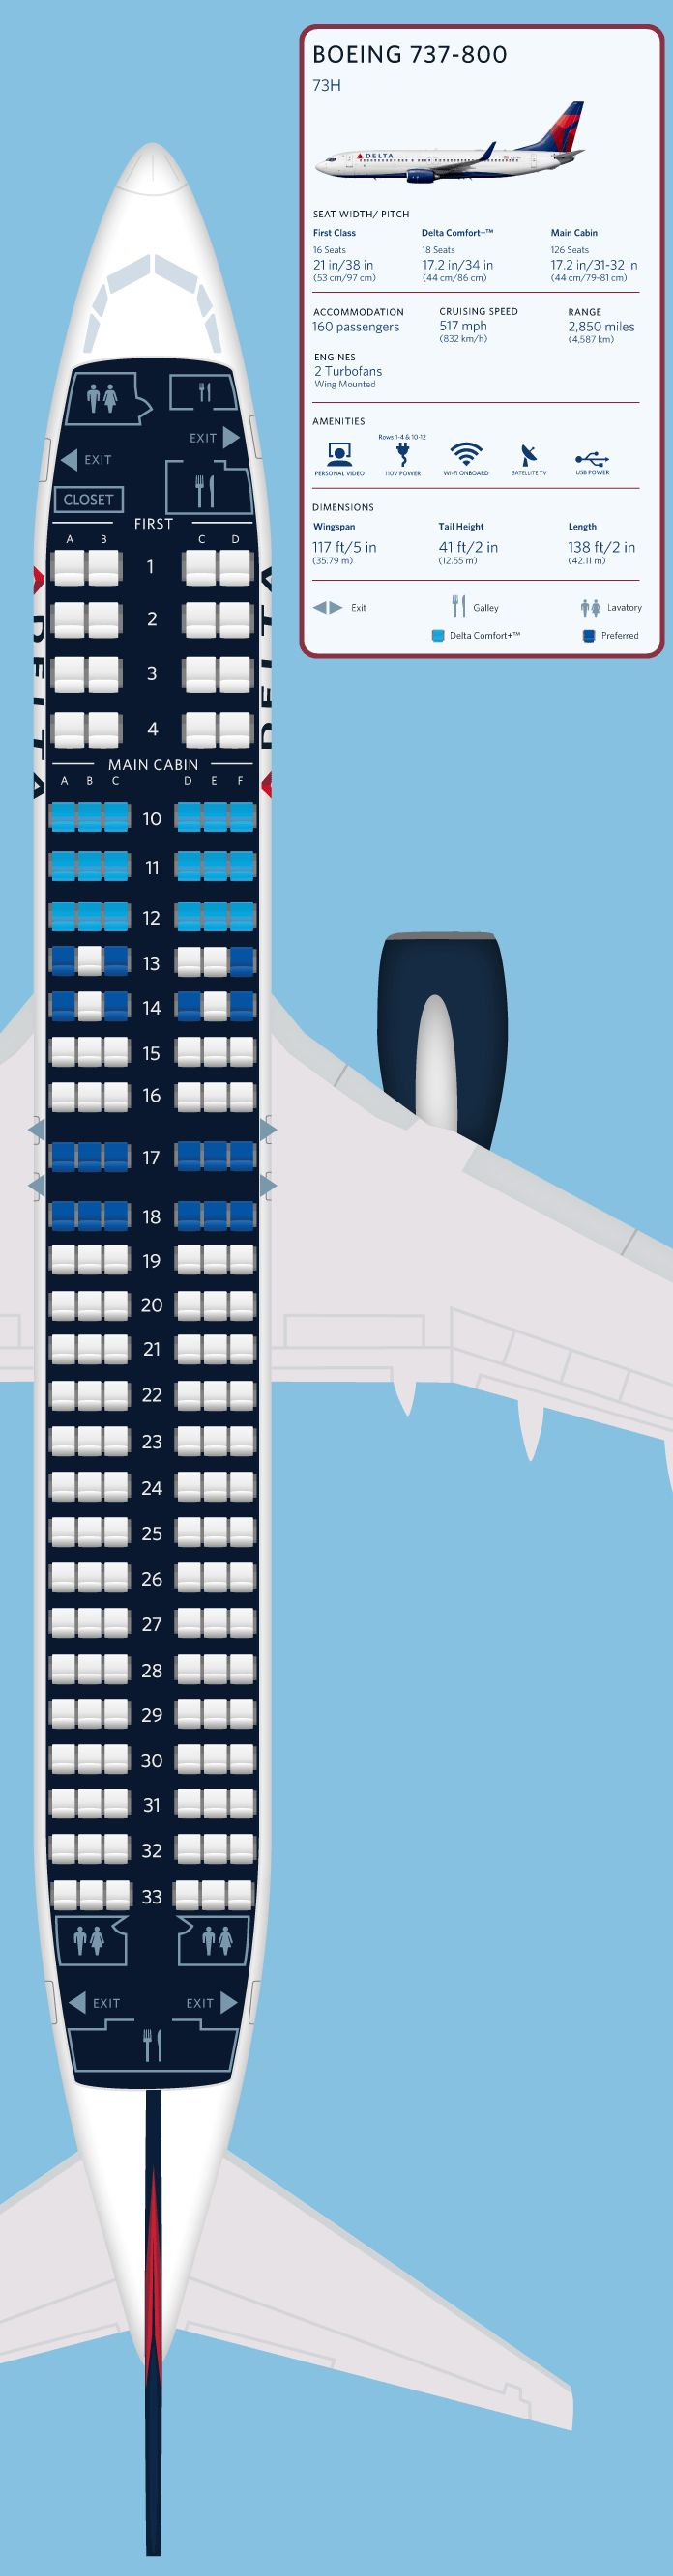 United Jet Chart 777 Boeing Seating